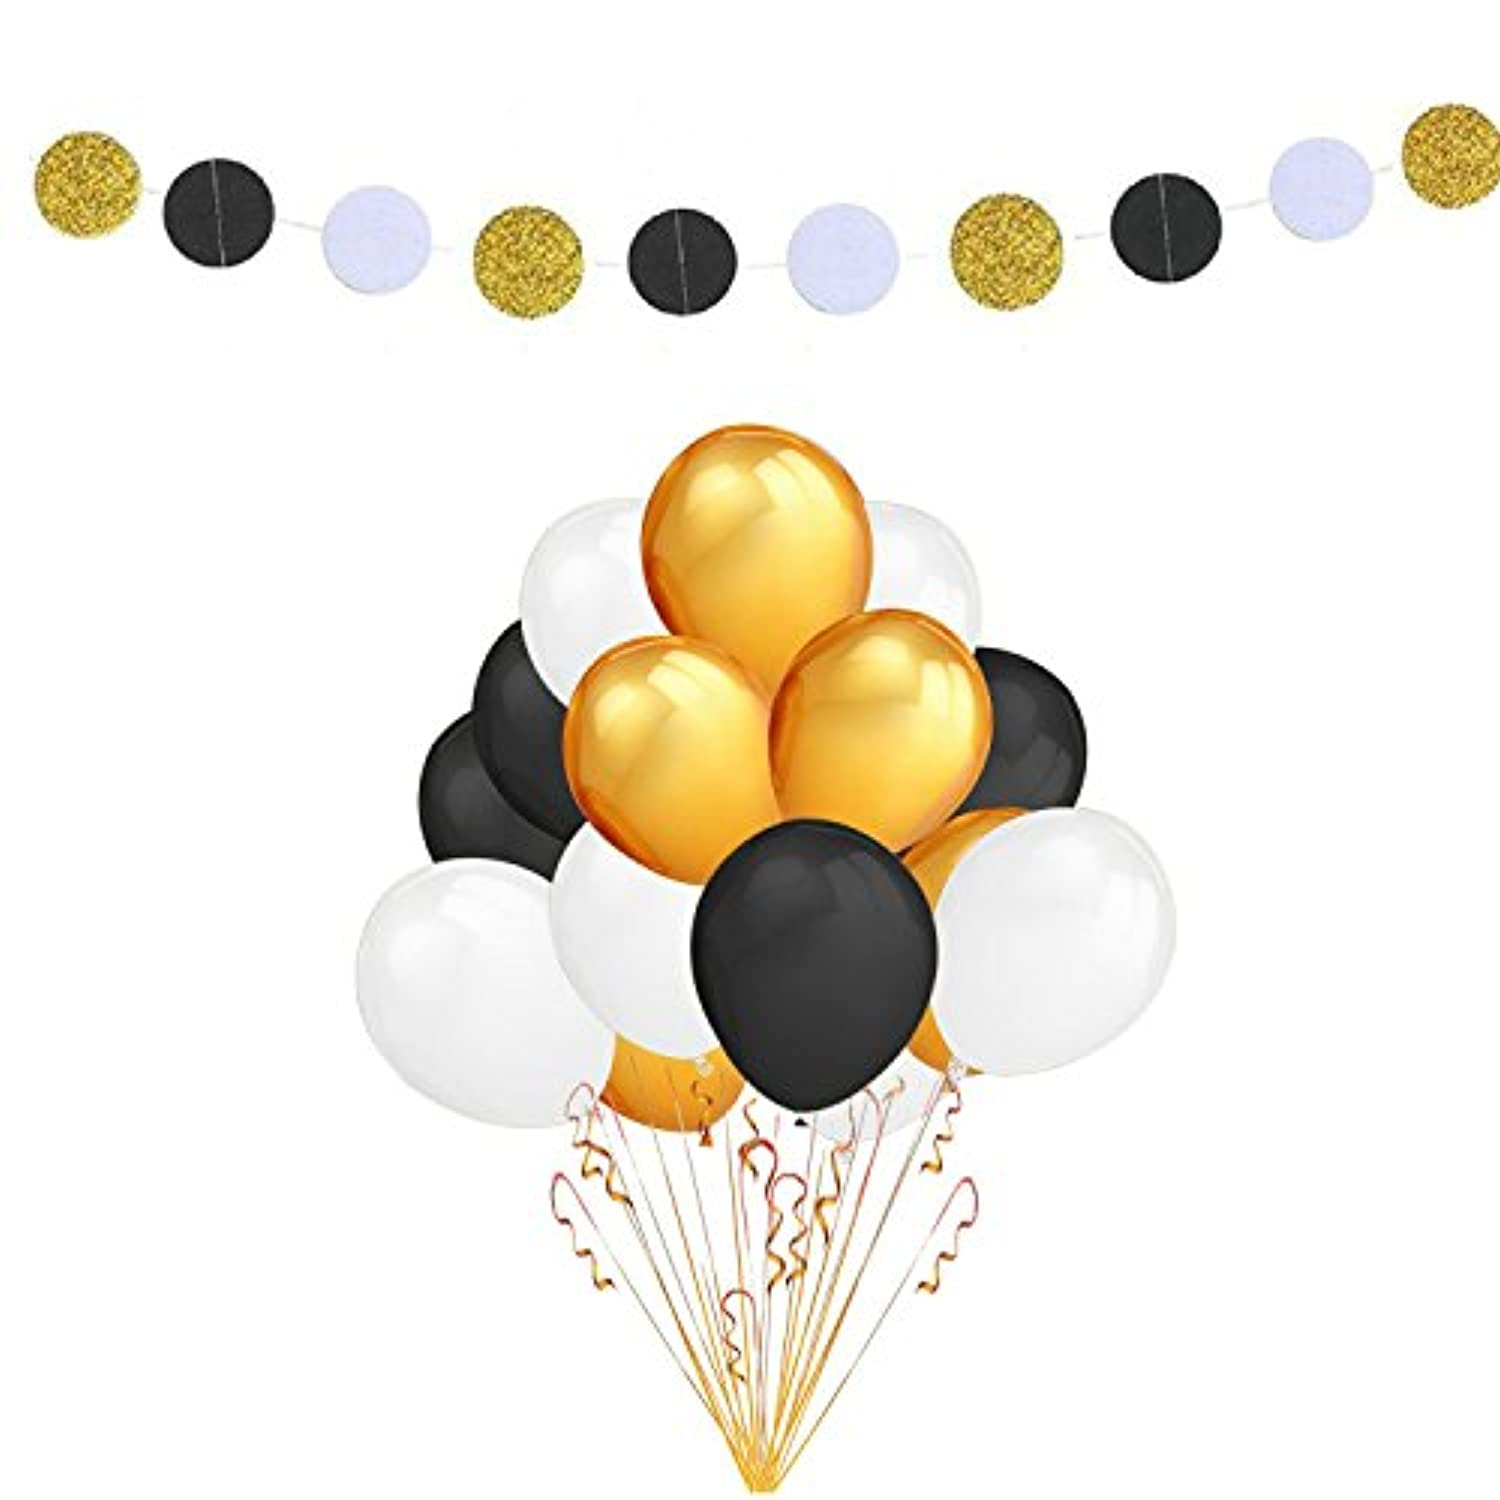 Fascola 100 Pack 30cm Ultra Thickness Gold & Black & White Colour Latex Party Balloons with White Black Gold Polka Dot Garland for Party Decorations